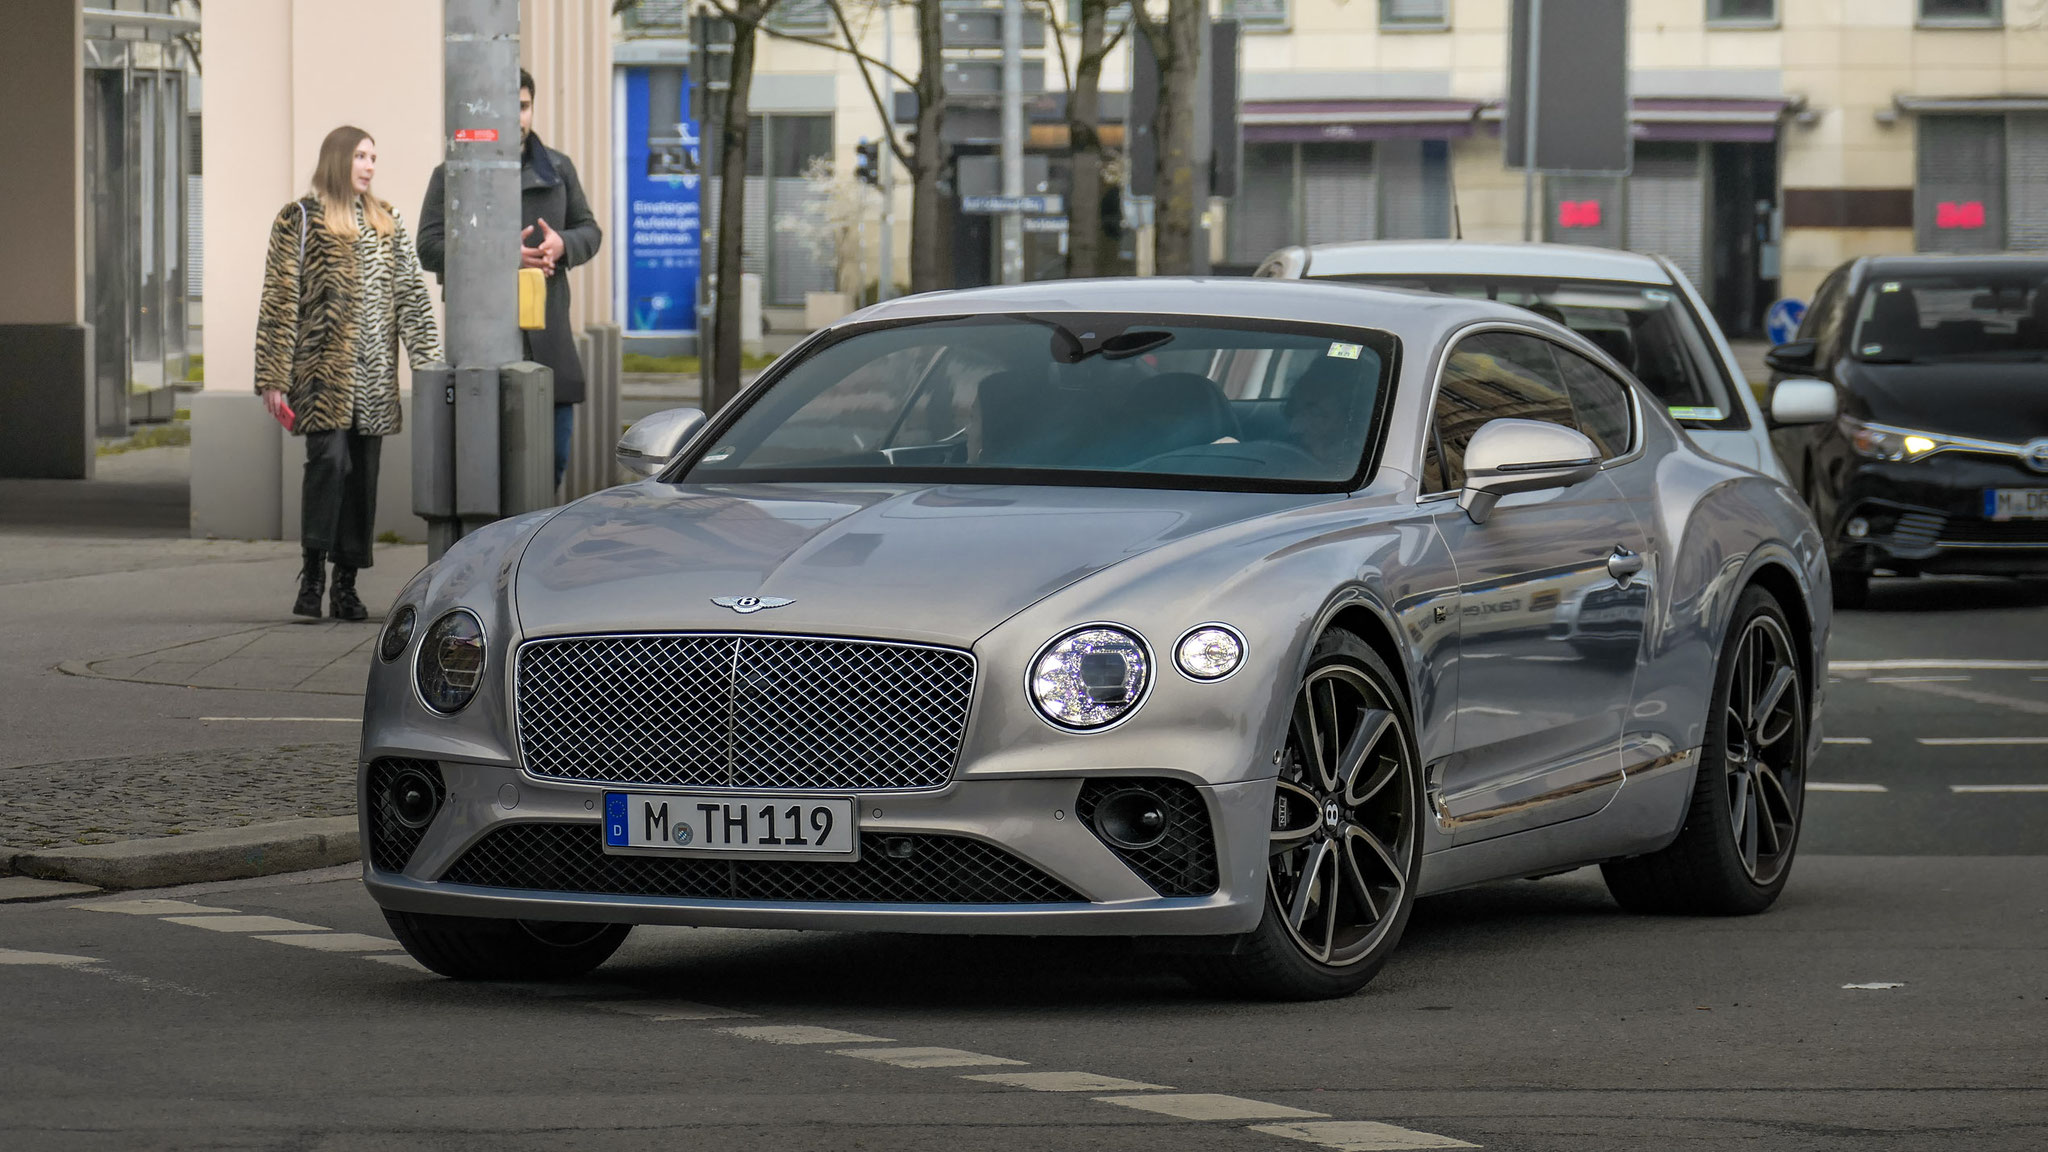 Bentley Continental GT - M-TH-119